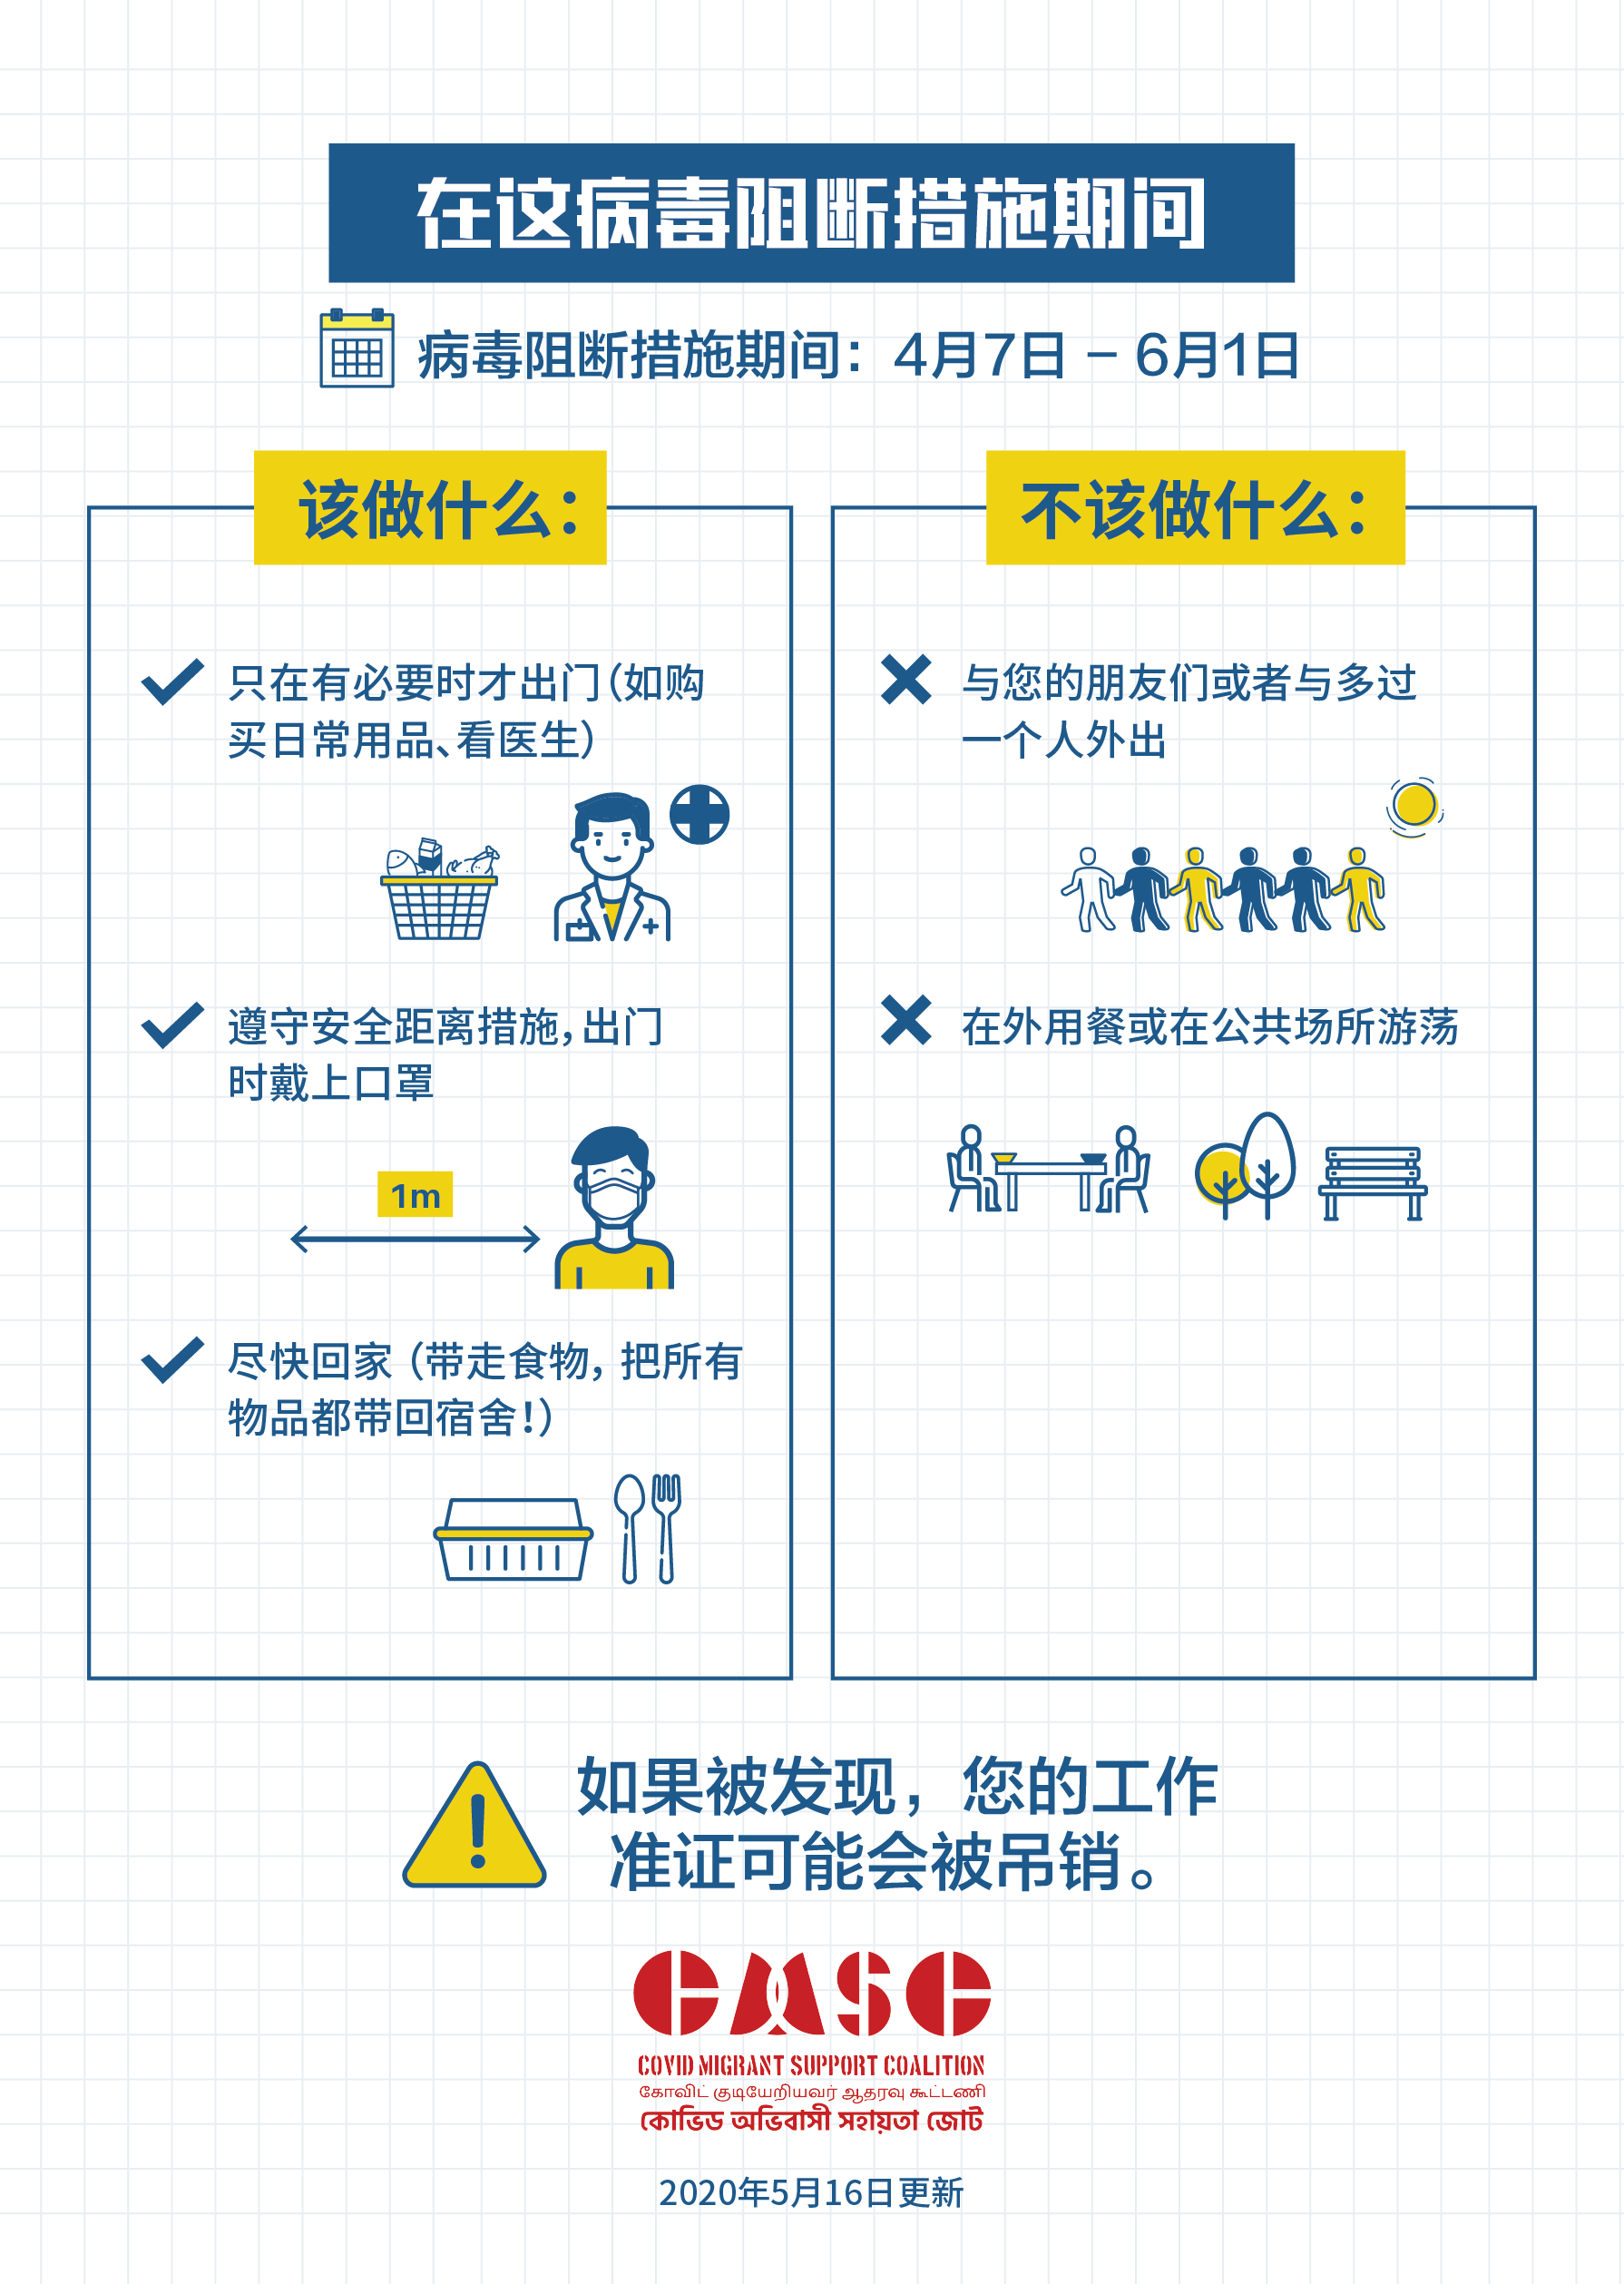 Covid Migrant Poster 4 Chinese